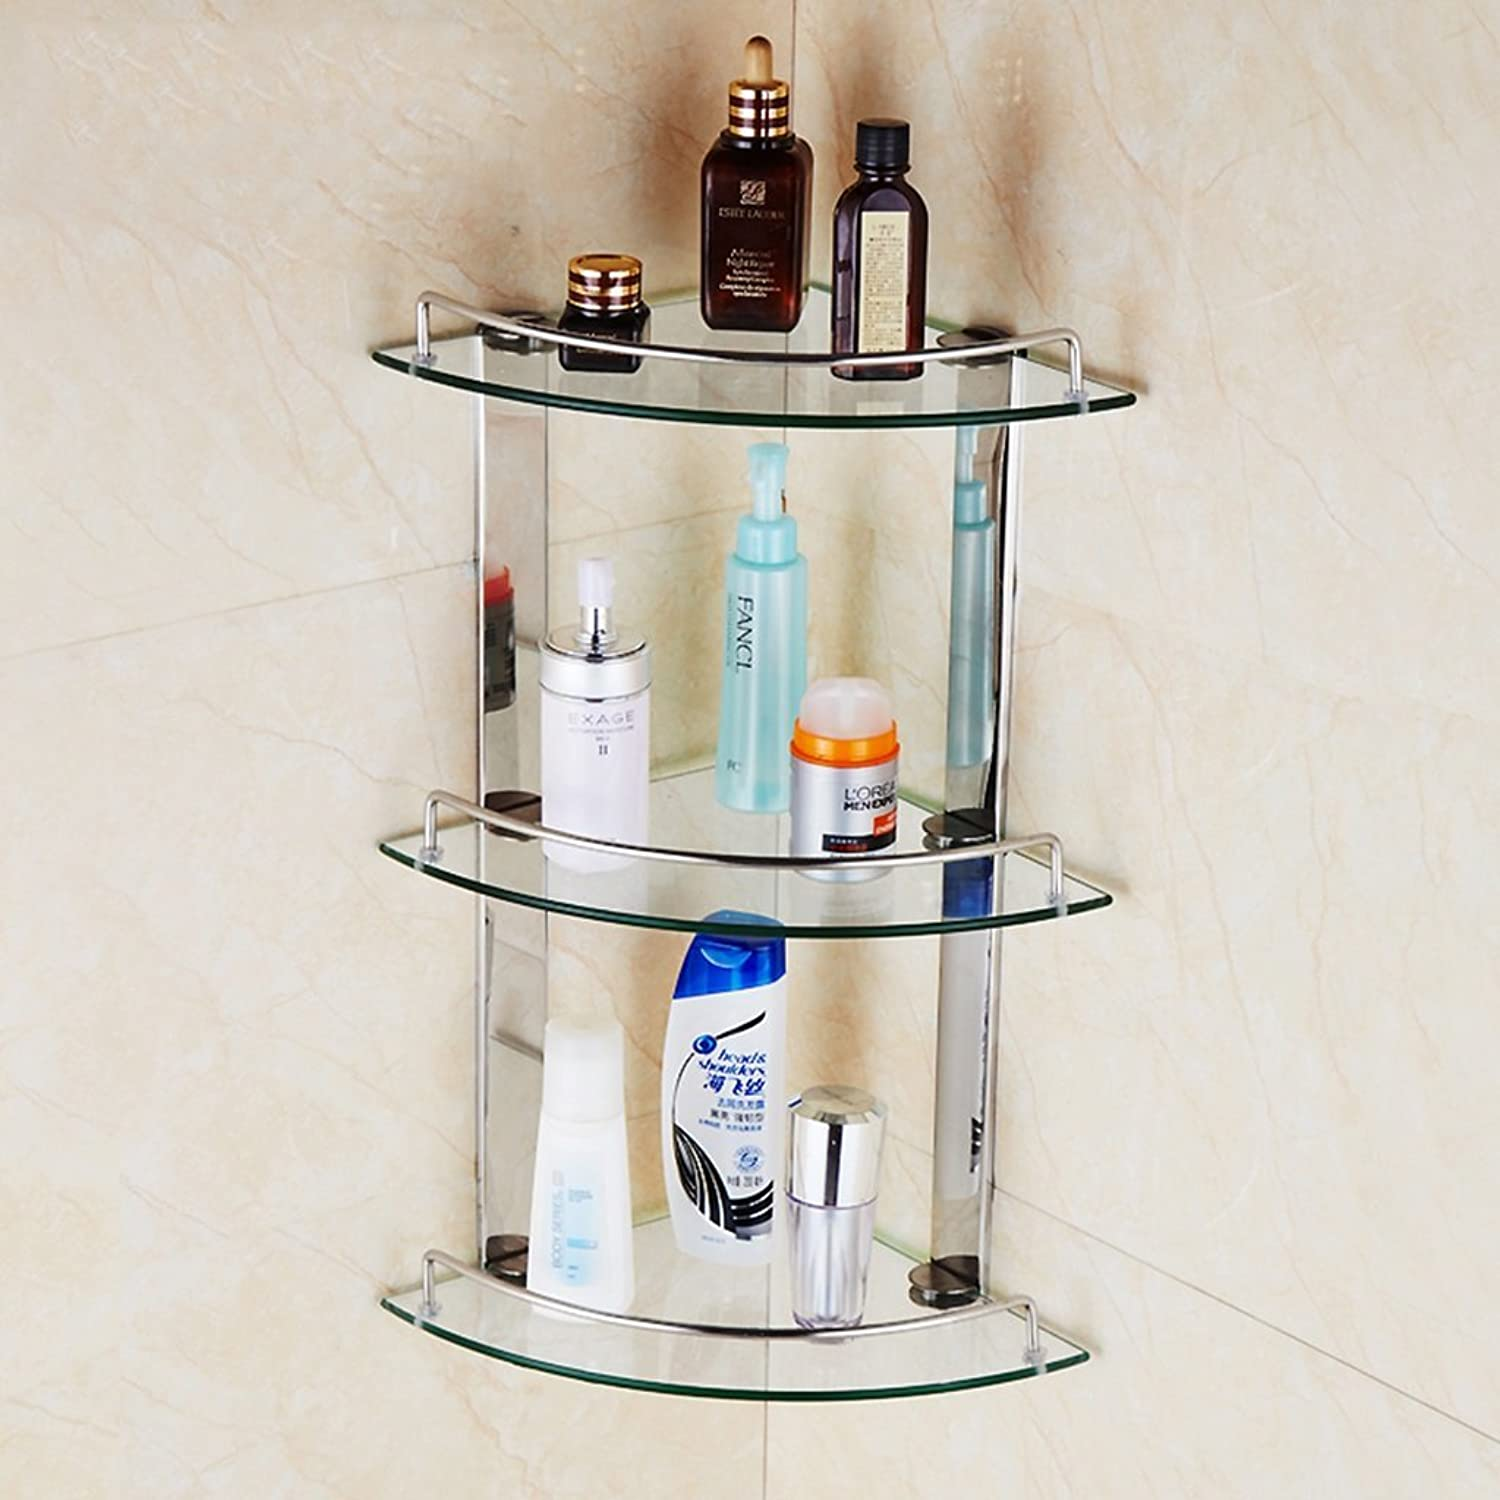 Shelf Stainless Steel Toilet Bathroom Single Double Triple Corner Fan Triangle Glass Shelf (Size   Three layers20cm)